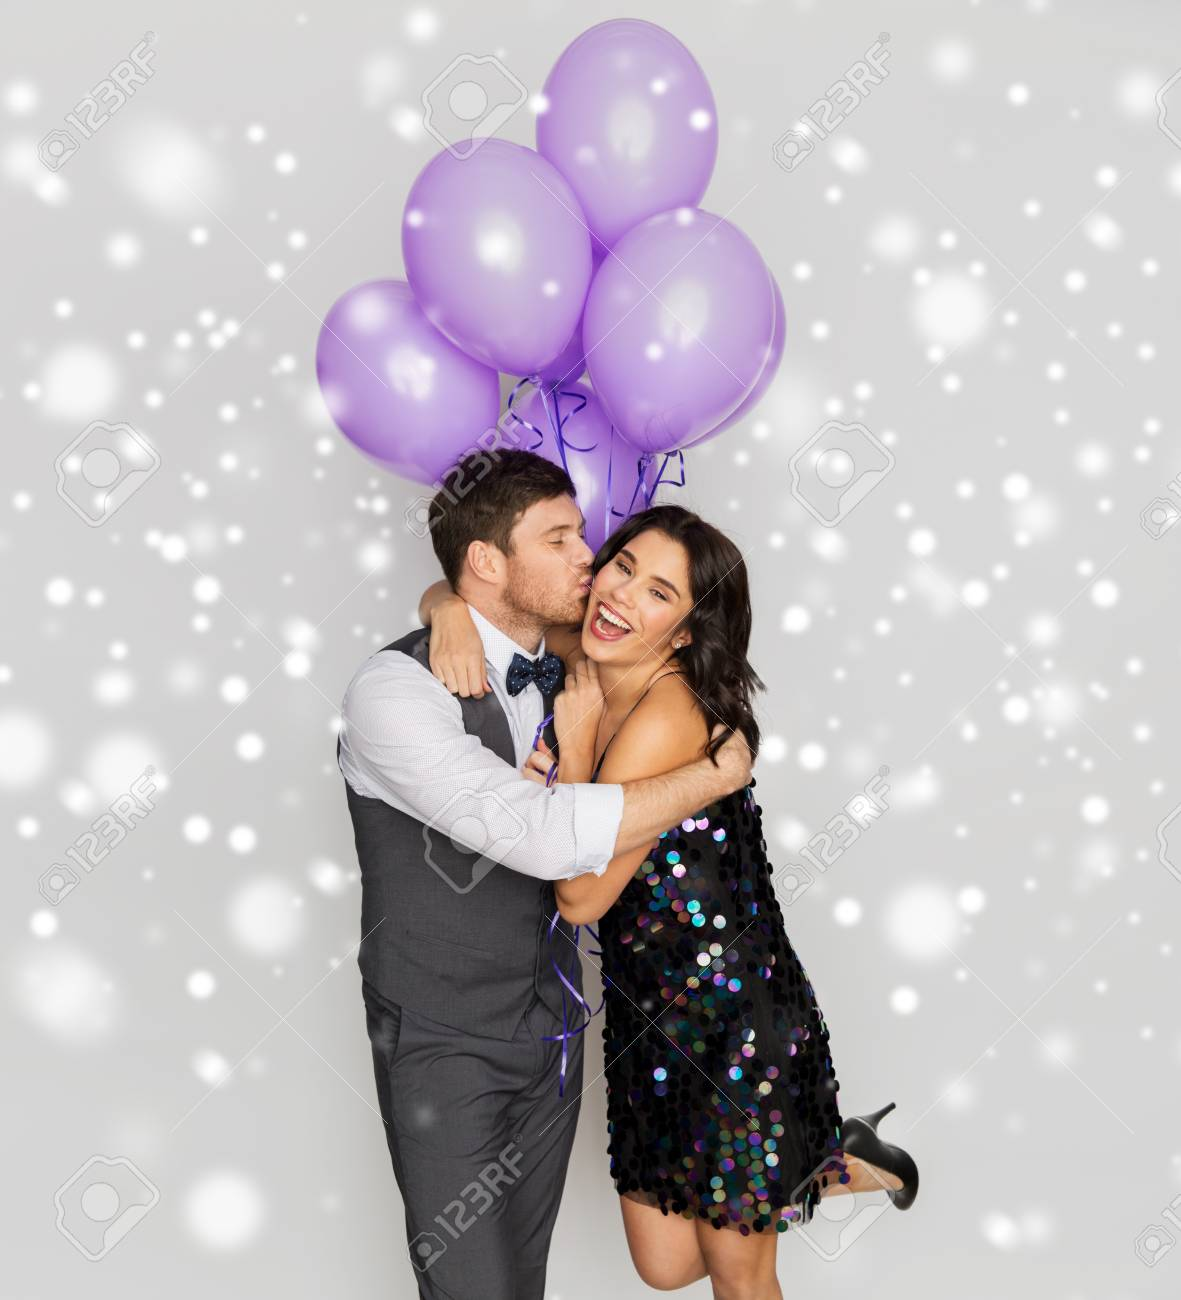 happy couple with violet balloons kissing at party - 110623124